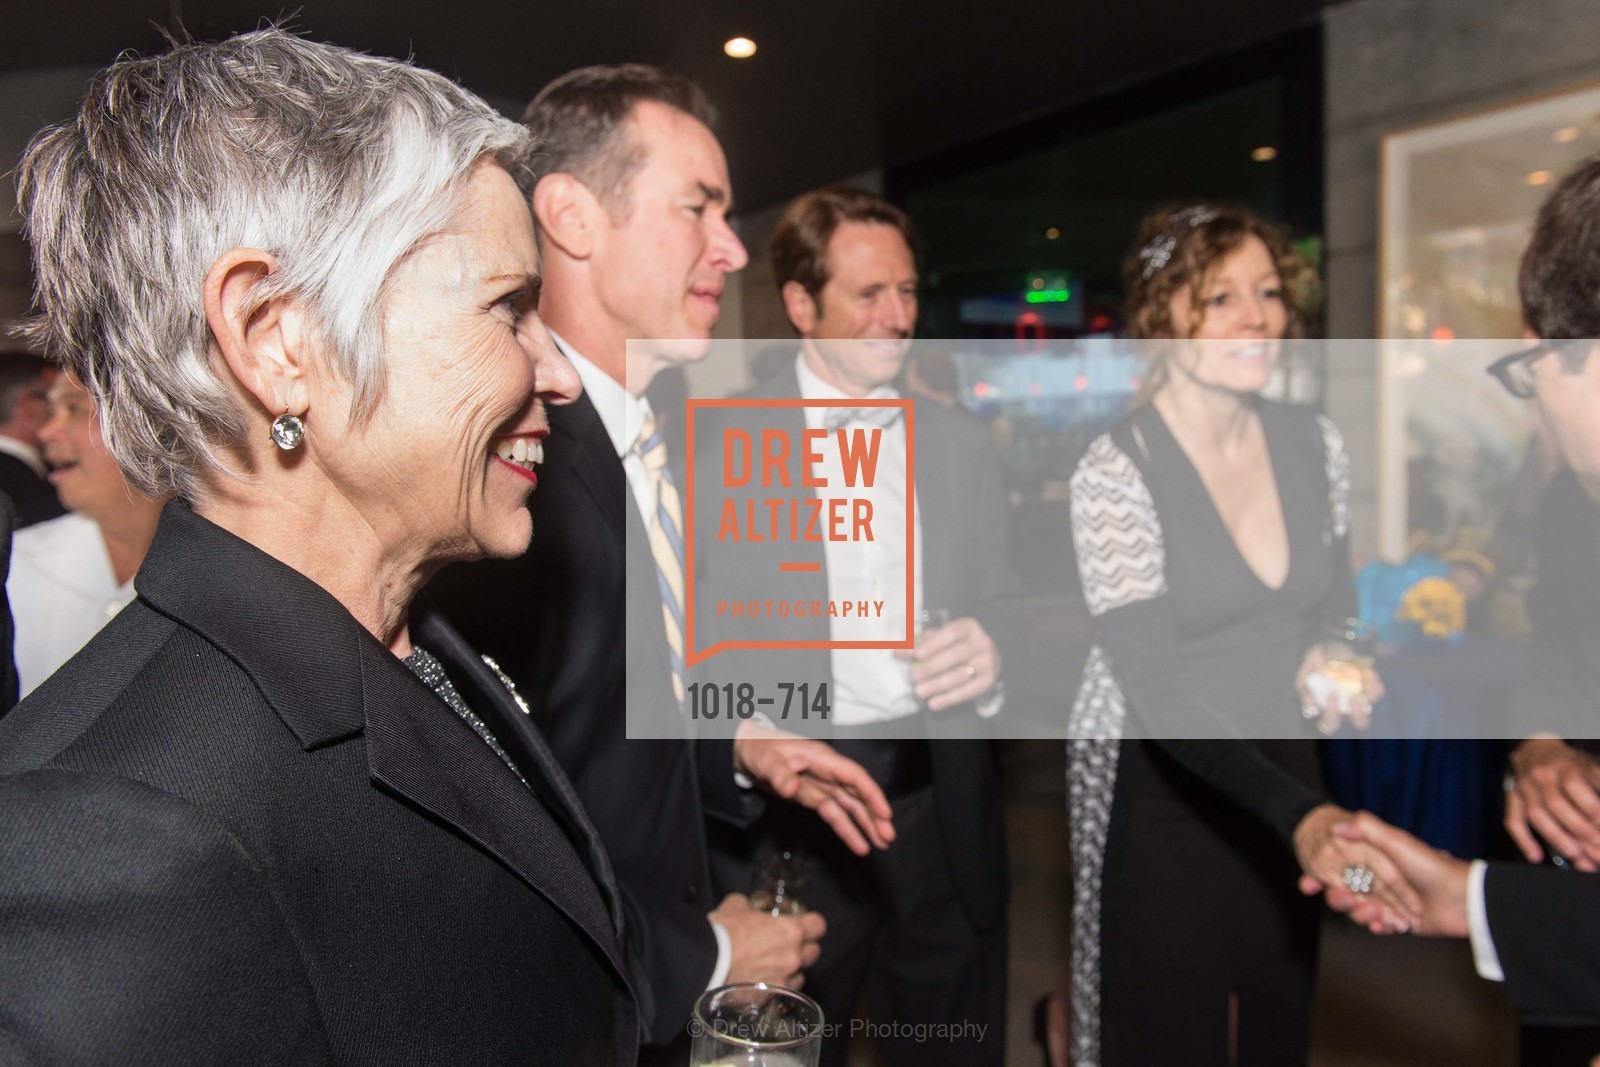 Laura Lazarus, SFJAZZ Gala 2015 Honors Joni Mitchell with Lifetime Achievement Award, US, May 8th, 2015,Drew Altizer, Drew Altizer Photography, full-service agency, private events, San Francisco photographer, photographer california